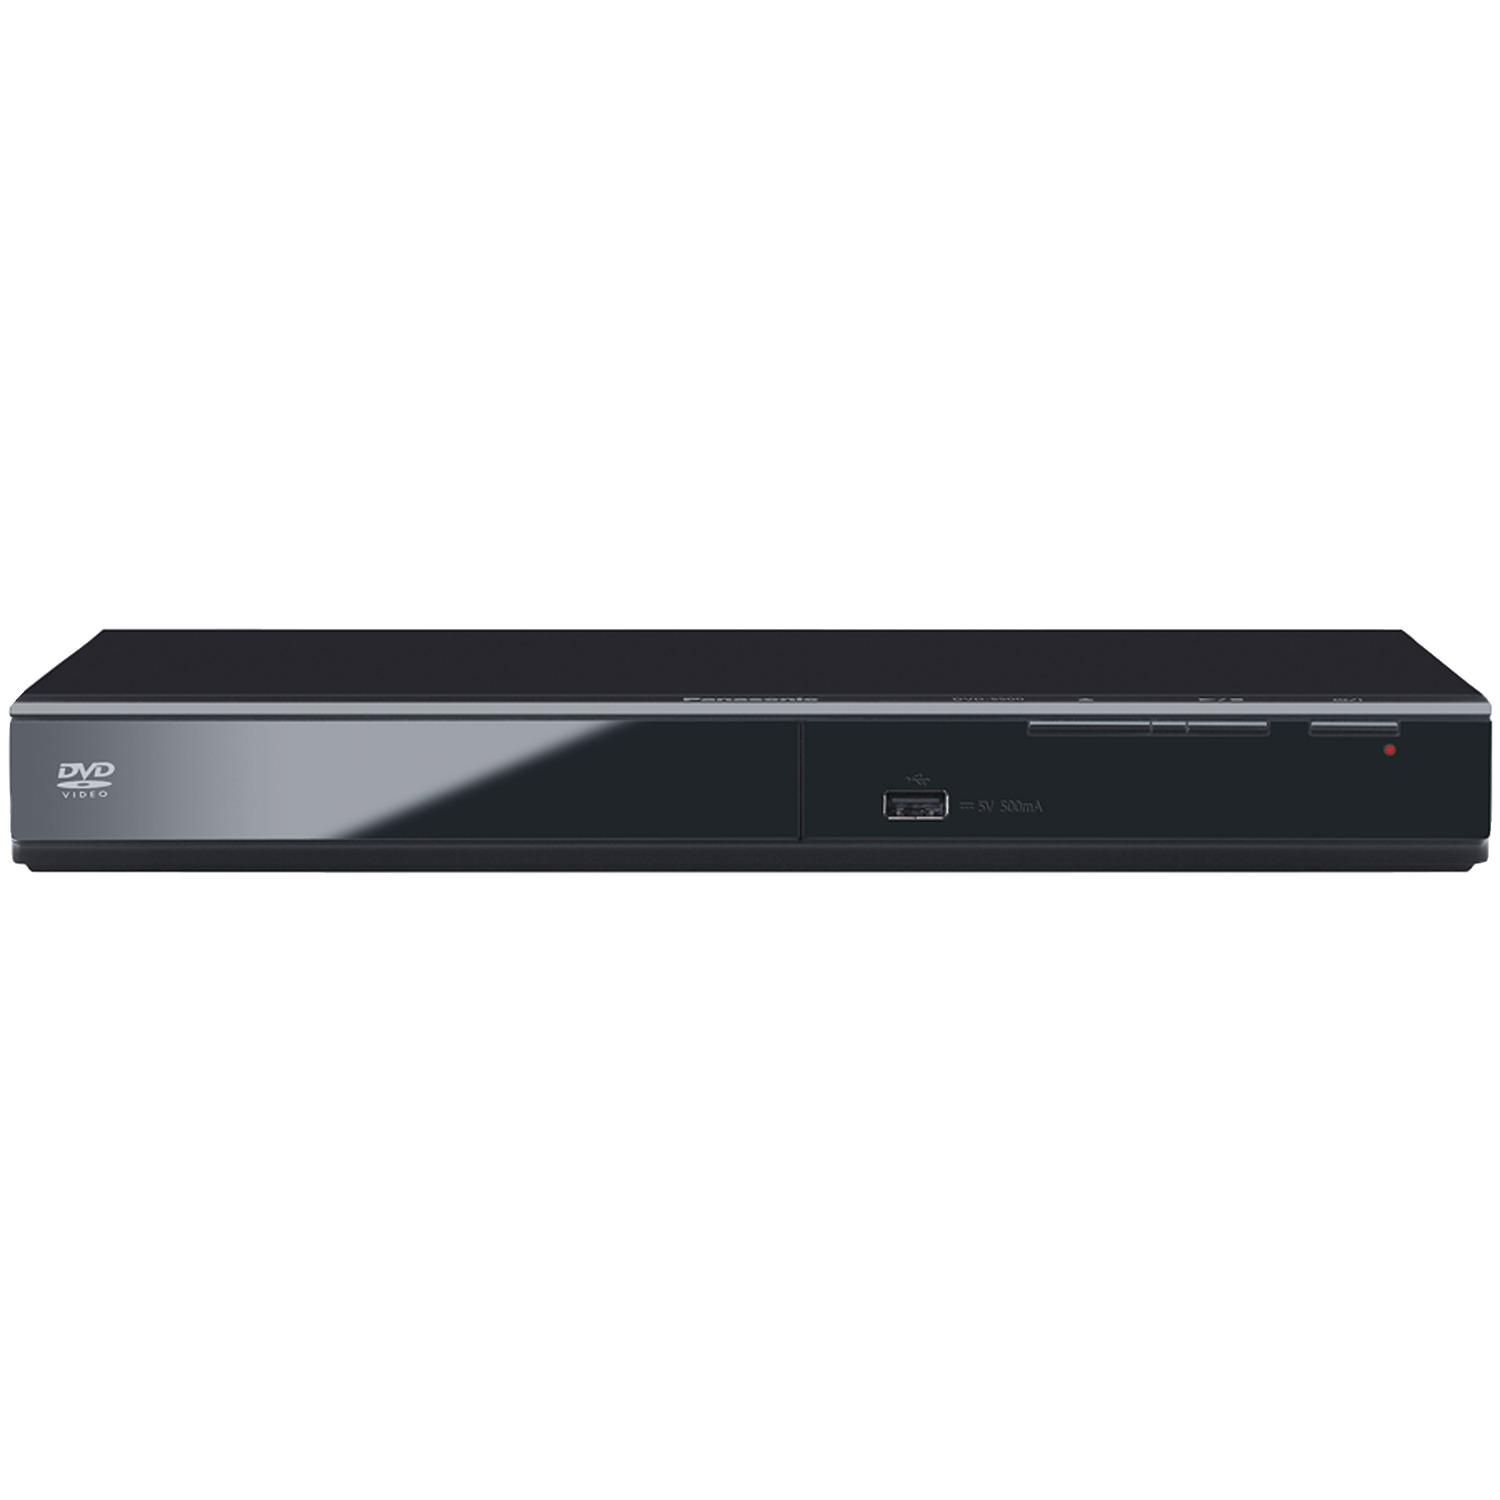 Panasonic DVD-S500 Progressive Scan DVD Player